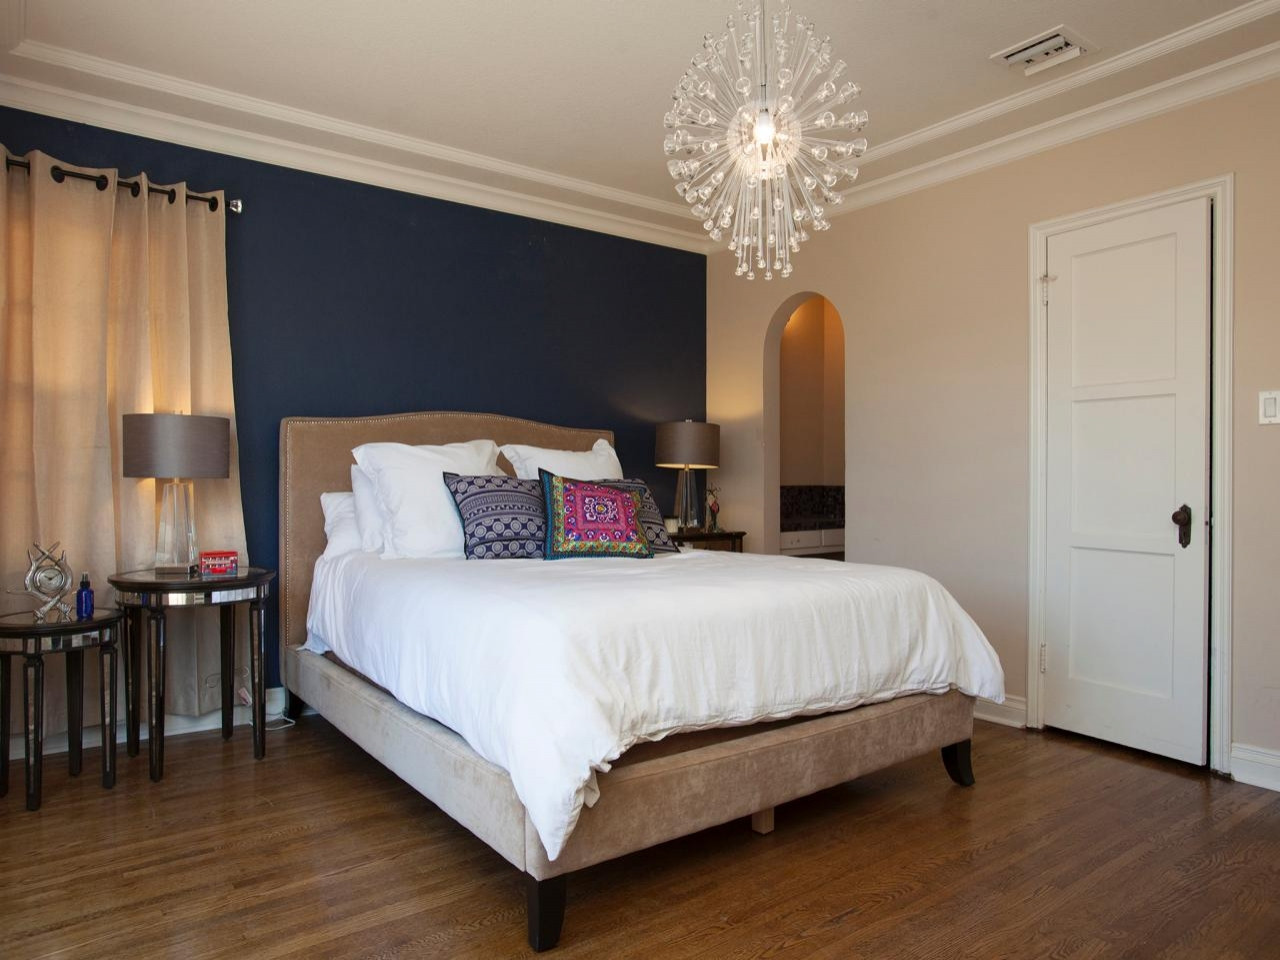 Best ideas about Rooms With Accent Walls . Save or Pin Dark blue modern bedroom colors blue for accent walls Now.